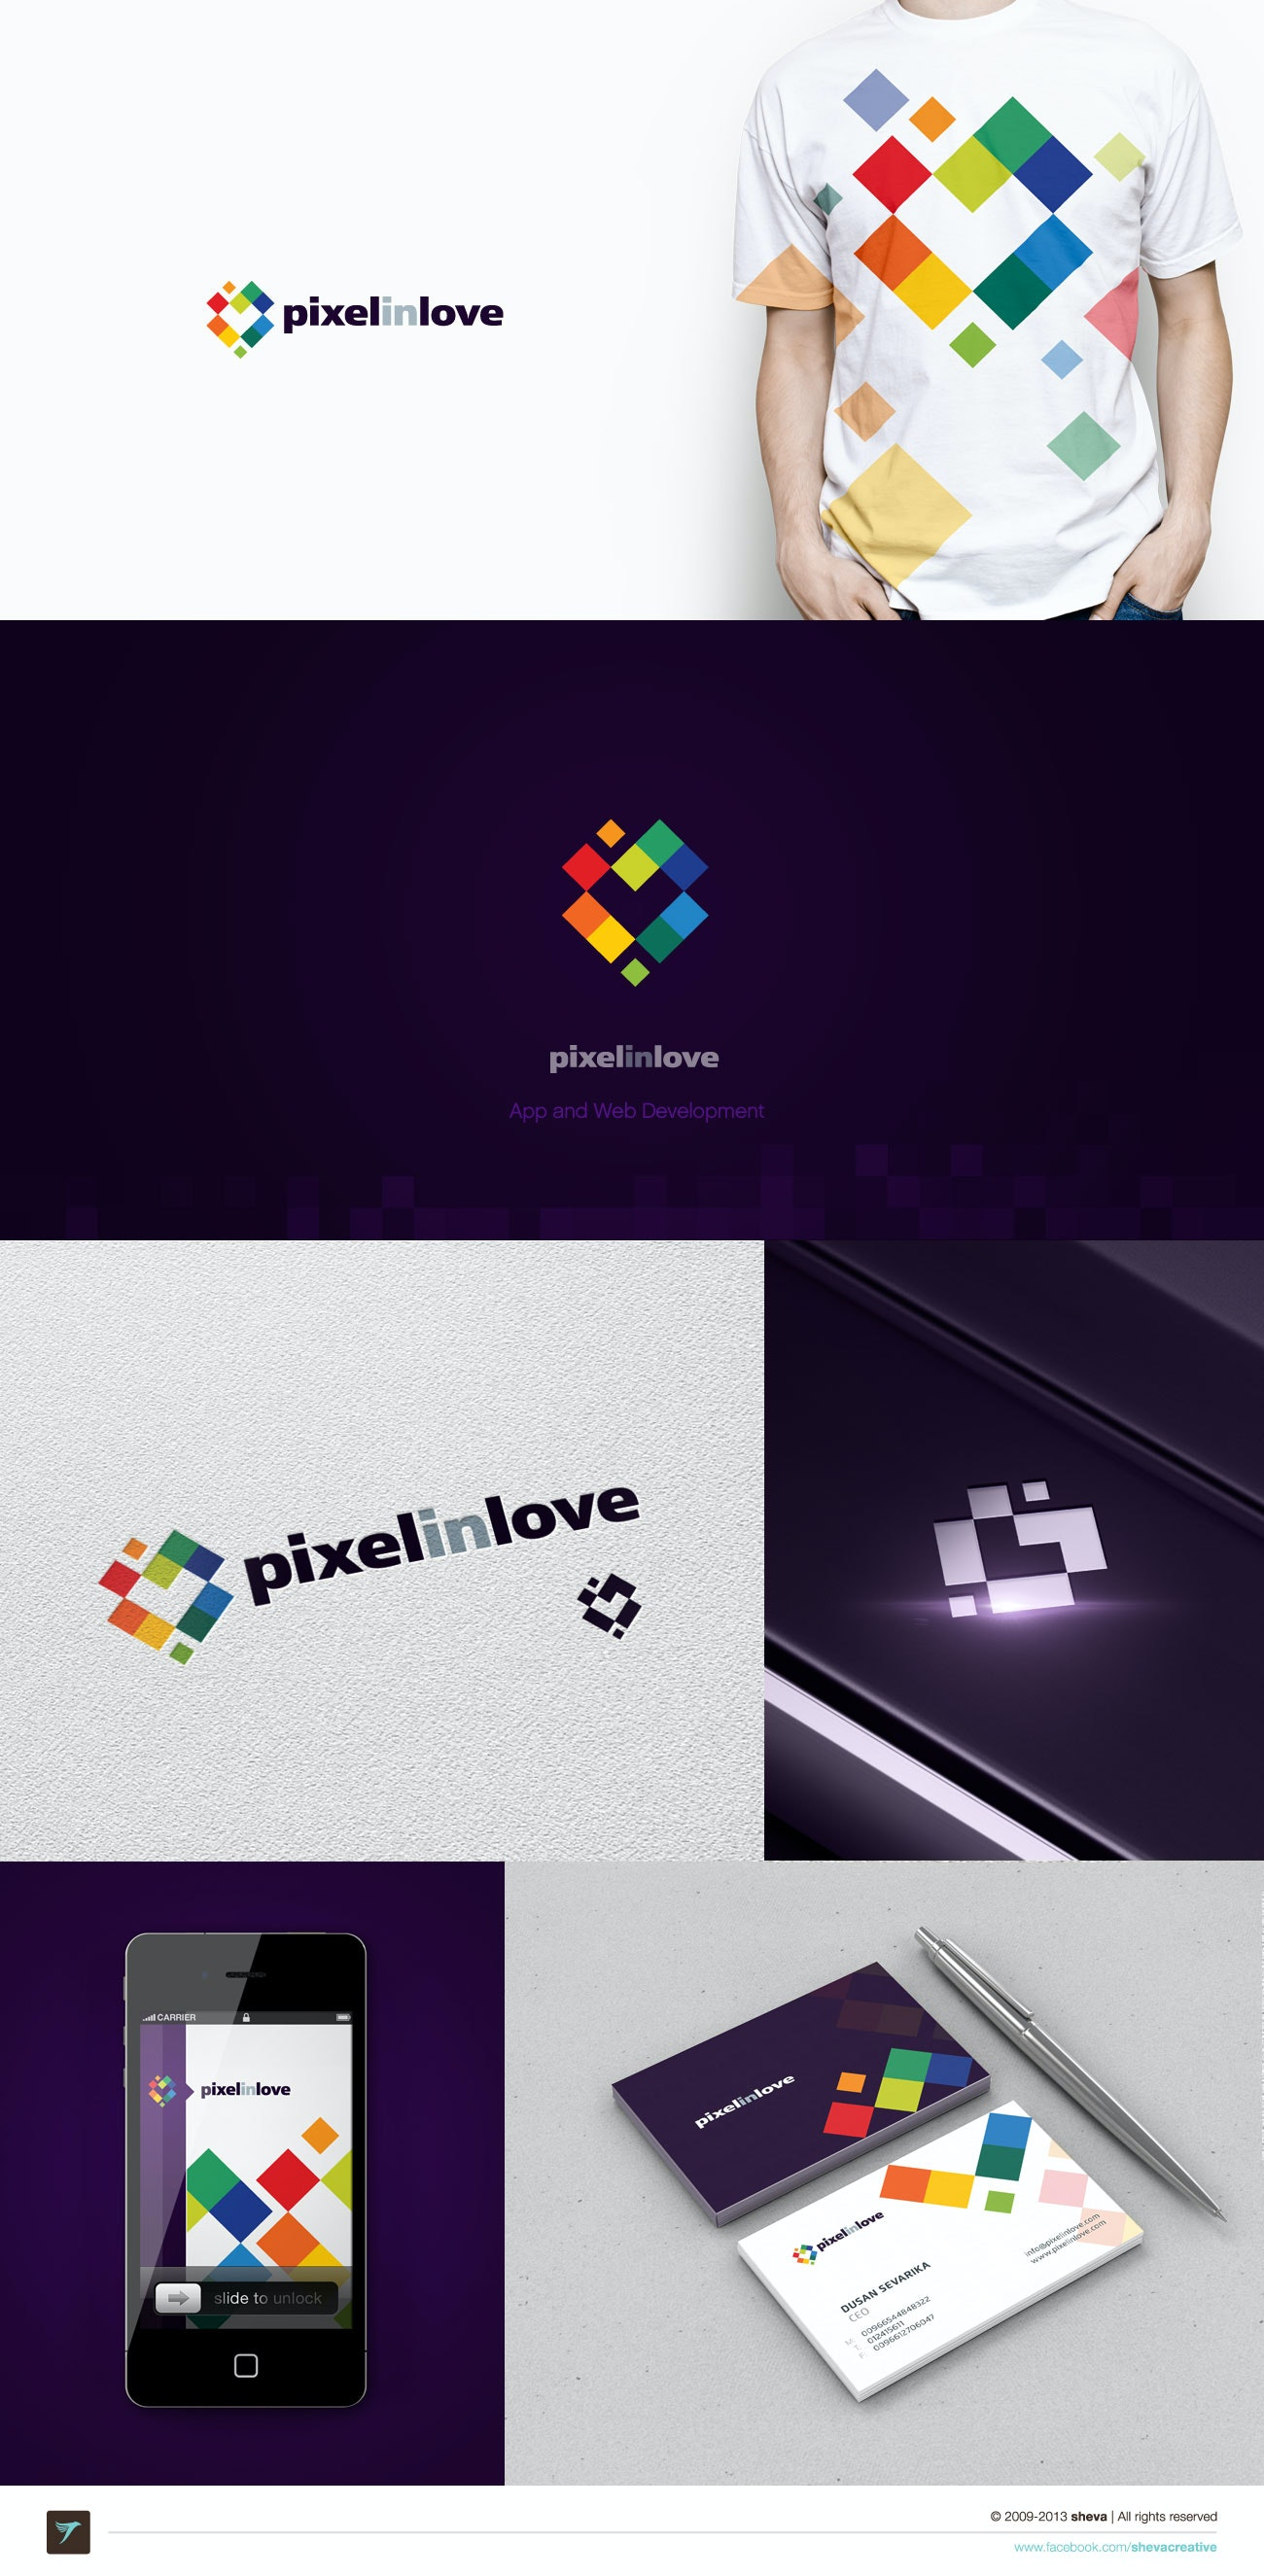 4 pixel love design